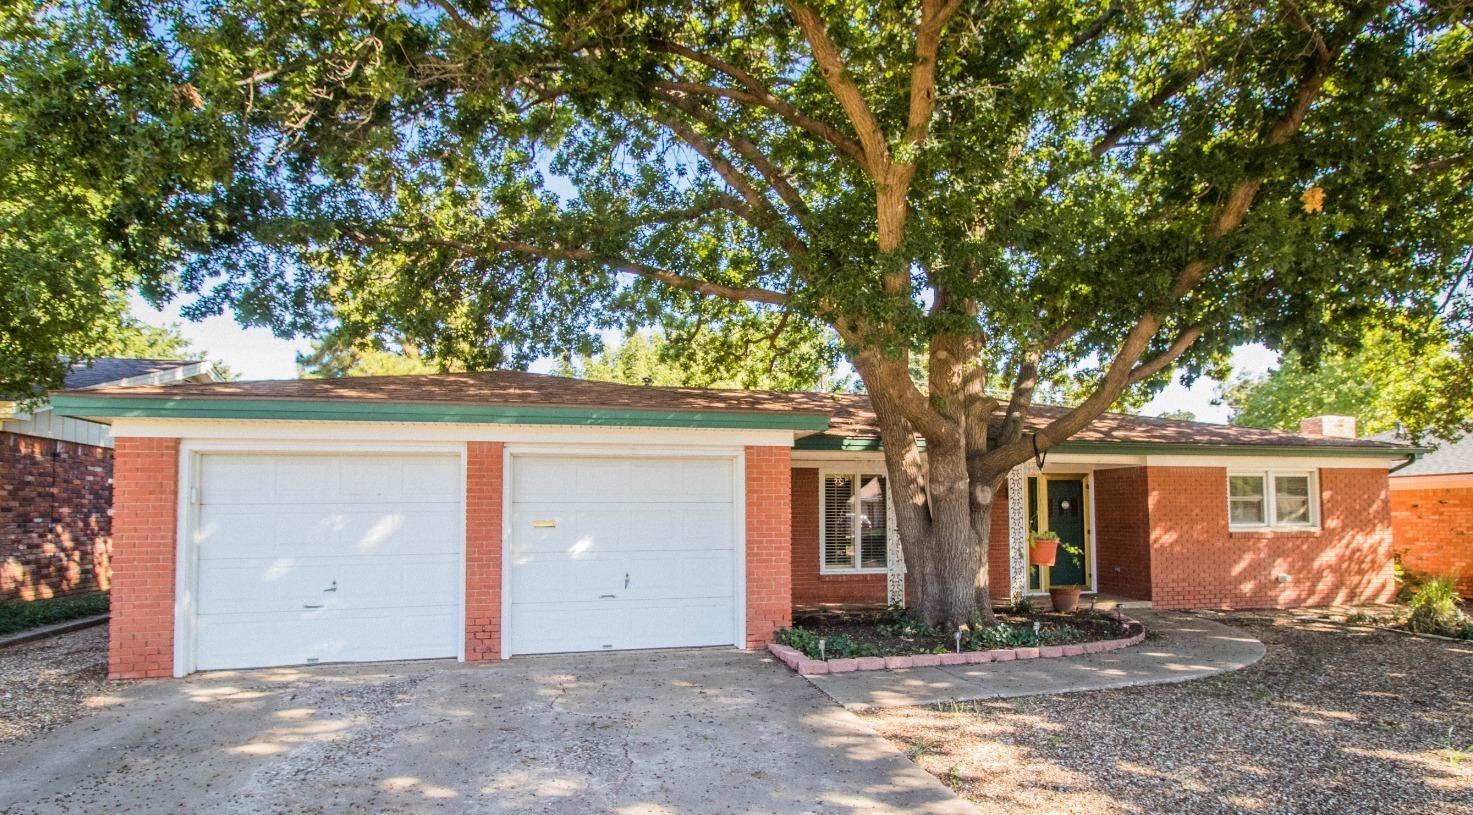 Check out this Amazing 3/2.5/2 home with basement and bricked shop in the back. This shop has a 2 car garage door on the back facing the alley with a 1/2 bath in it! This home has hardwood floors, quartz counter tops and so many more upgrades. You will enjoy the beautiful grown trees and landscape.